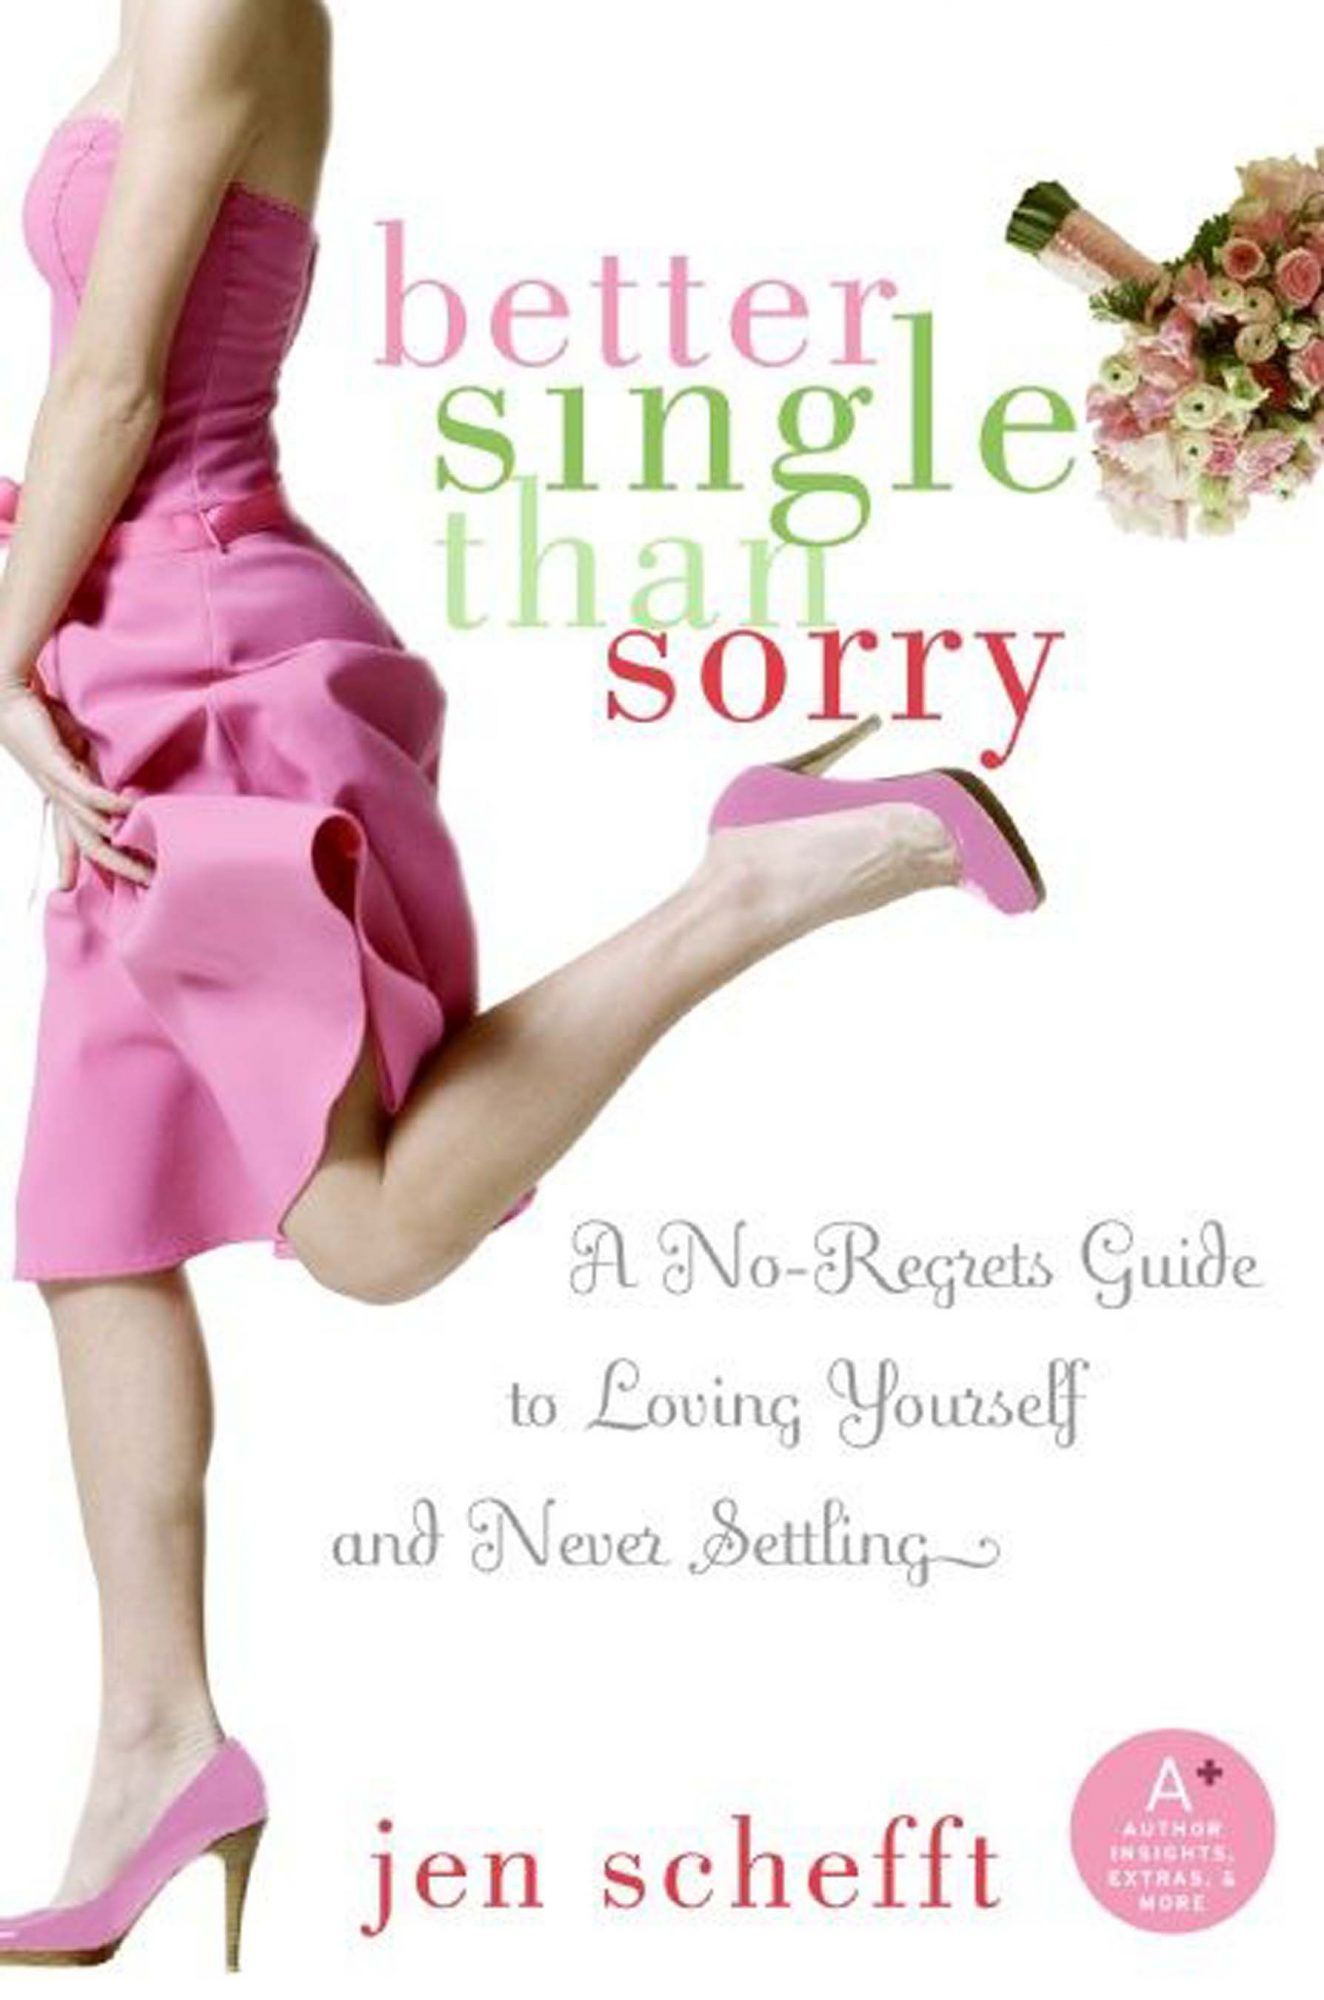 Better Single Than Sorry: A No-Regrets Guide to Loving Yourself and Never Settling by Jen Schefft